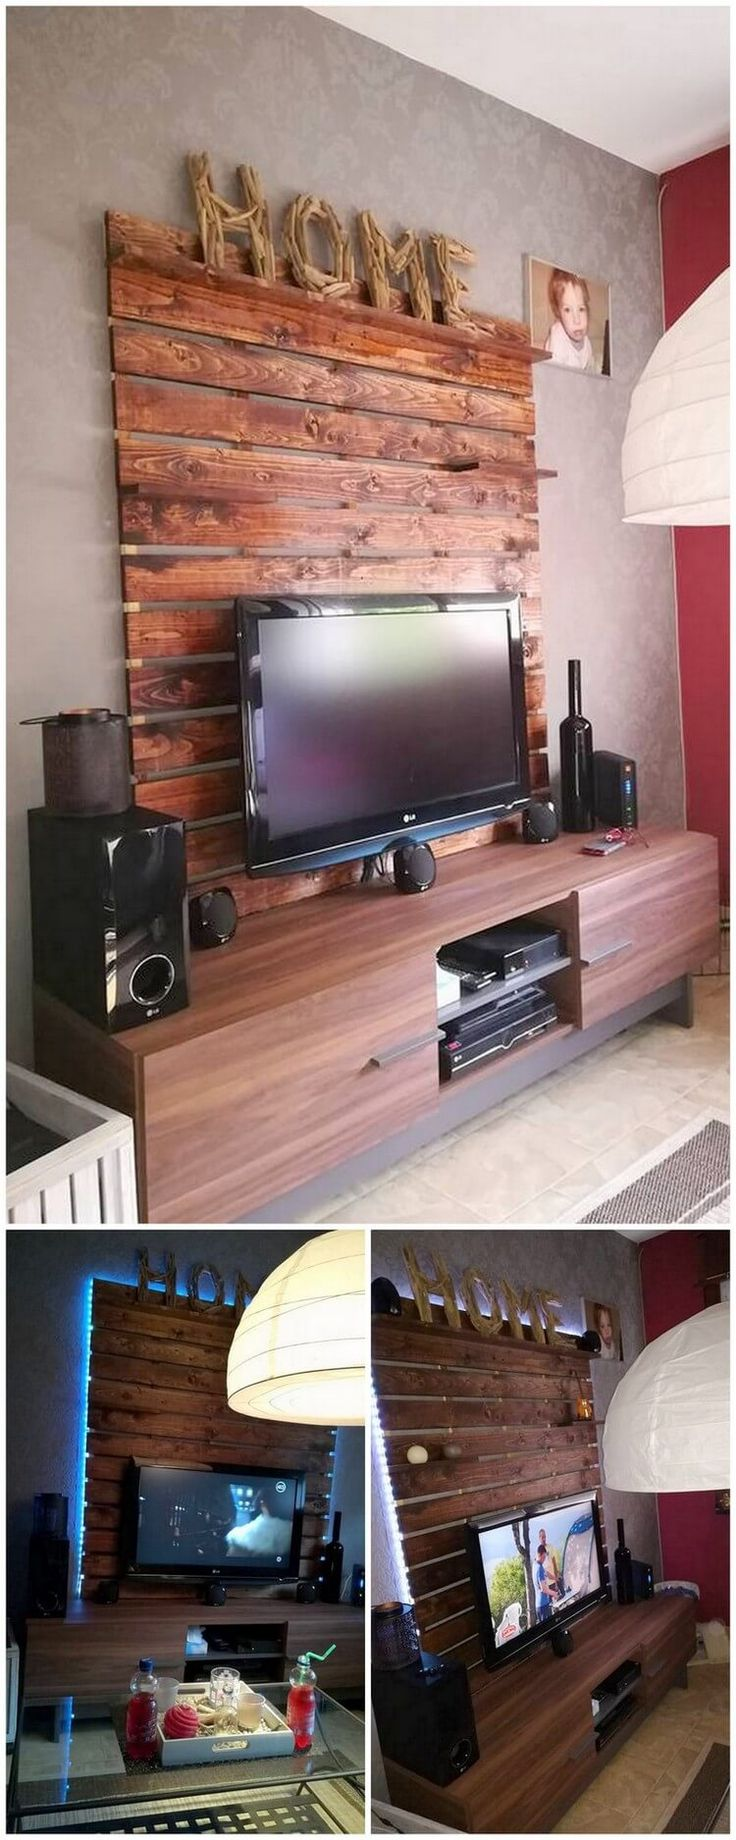 Have a look at this extraordinary designed creation of wood pallet media table stand for your house beauty! This media table TV stand is beautifully designed in the wall concepts that will bring a royal look in your house. Over the wall cladding, the wood pallet planks are customized in vertical form of plank designs.